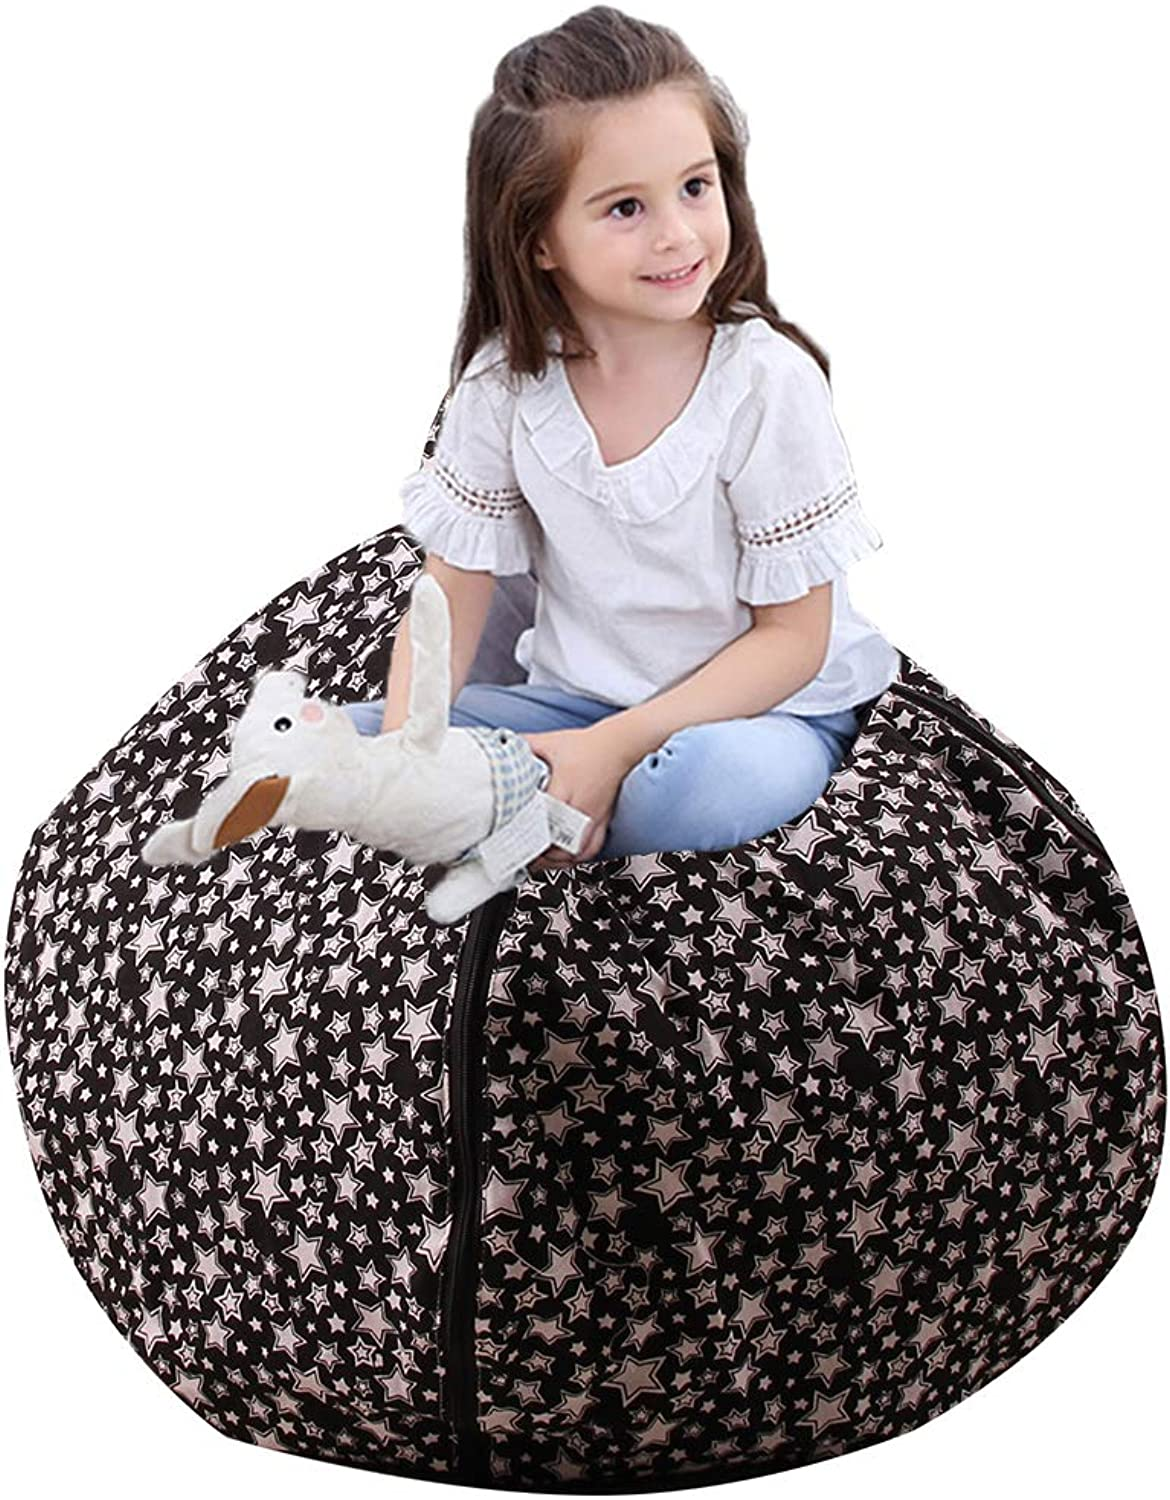 Gatycallaty Kids Comfy Chair Cover, Perfect for Storing Stuffed Animals, Clean Up Your Room and Play Area, Fashion Star Design